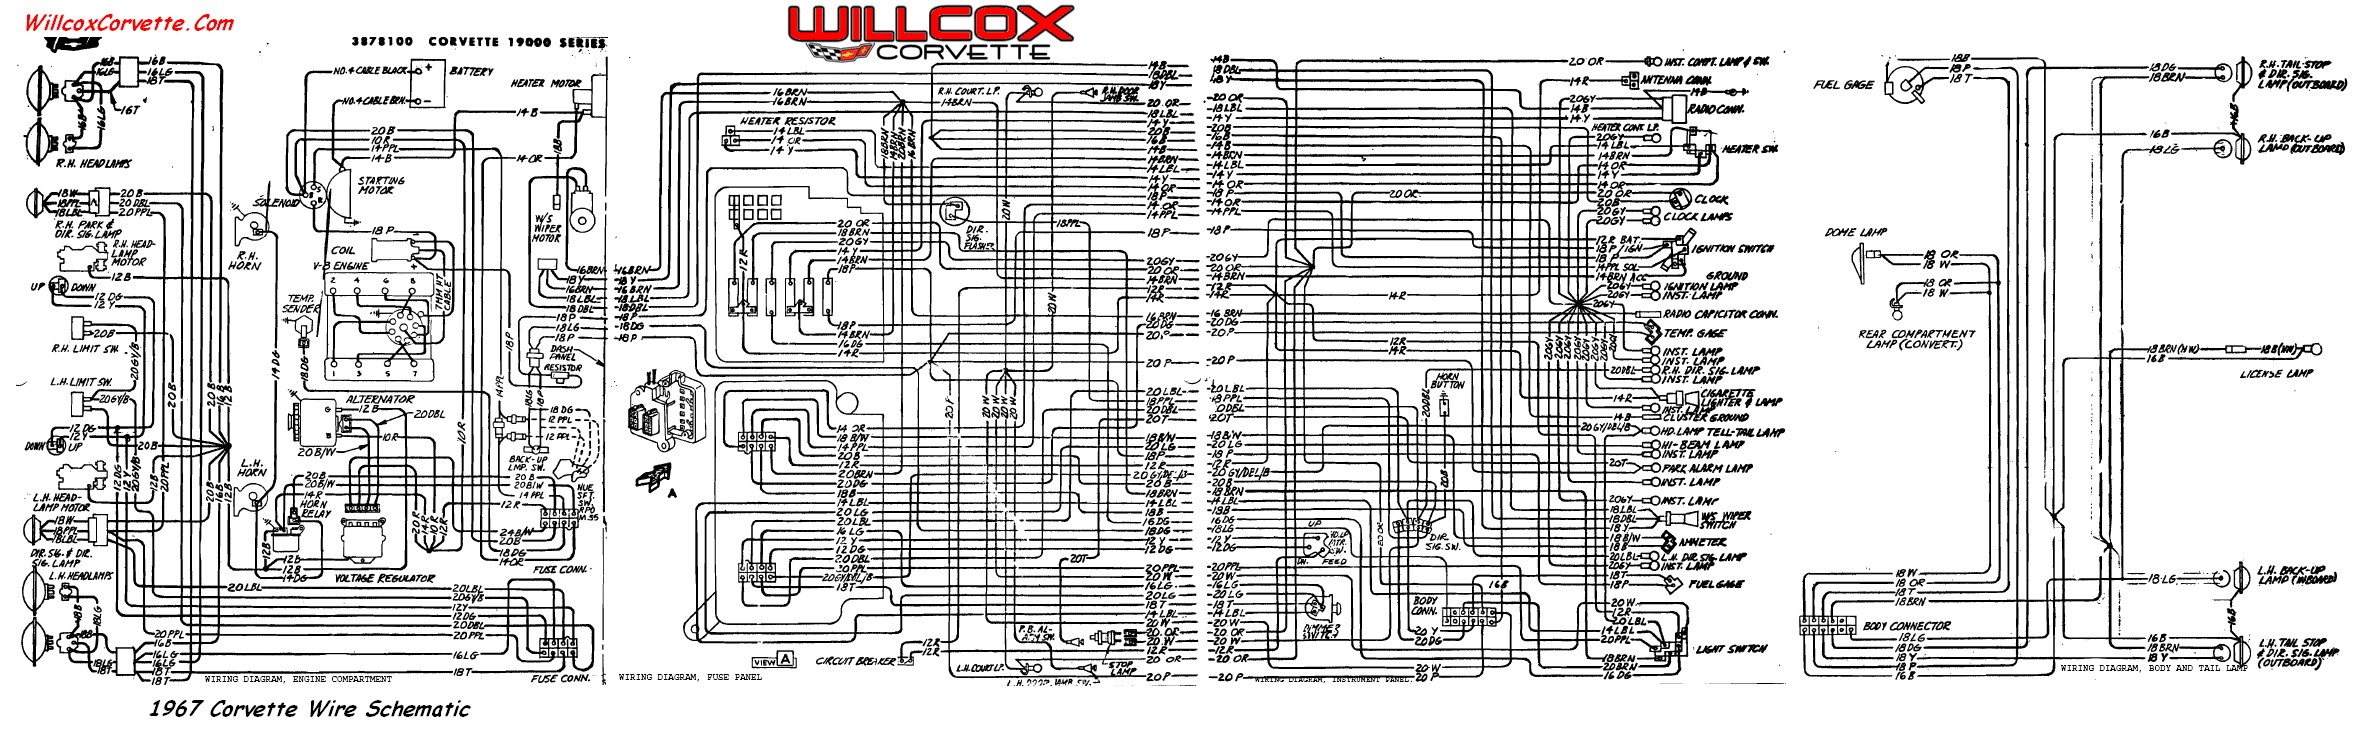 1992 Corvette Wiring Diagram Diagrams Schematic Obd1 1990 Ford Mustang Schematics Online 1957